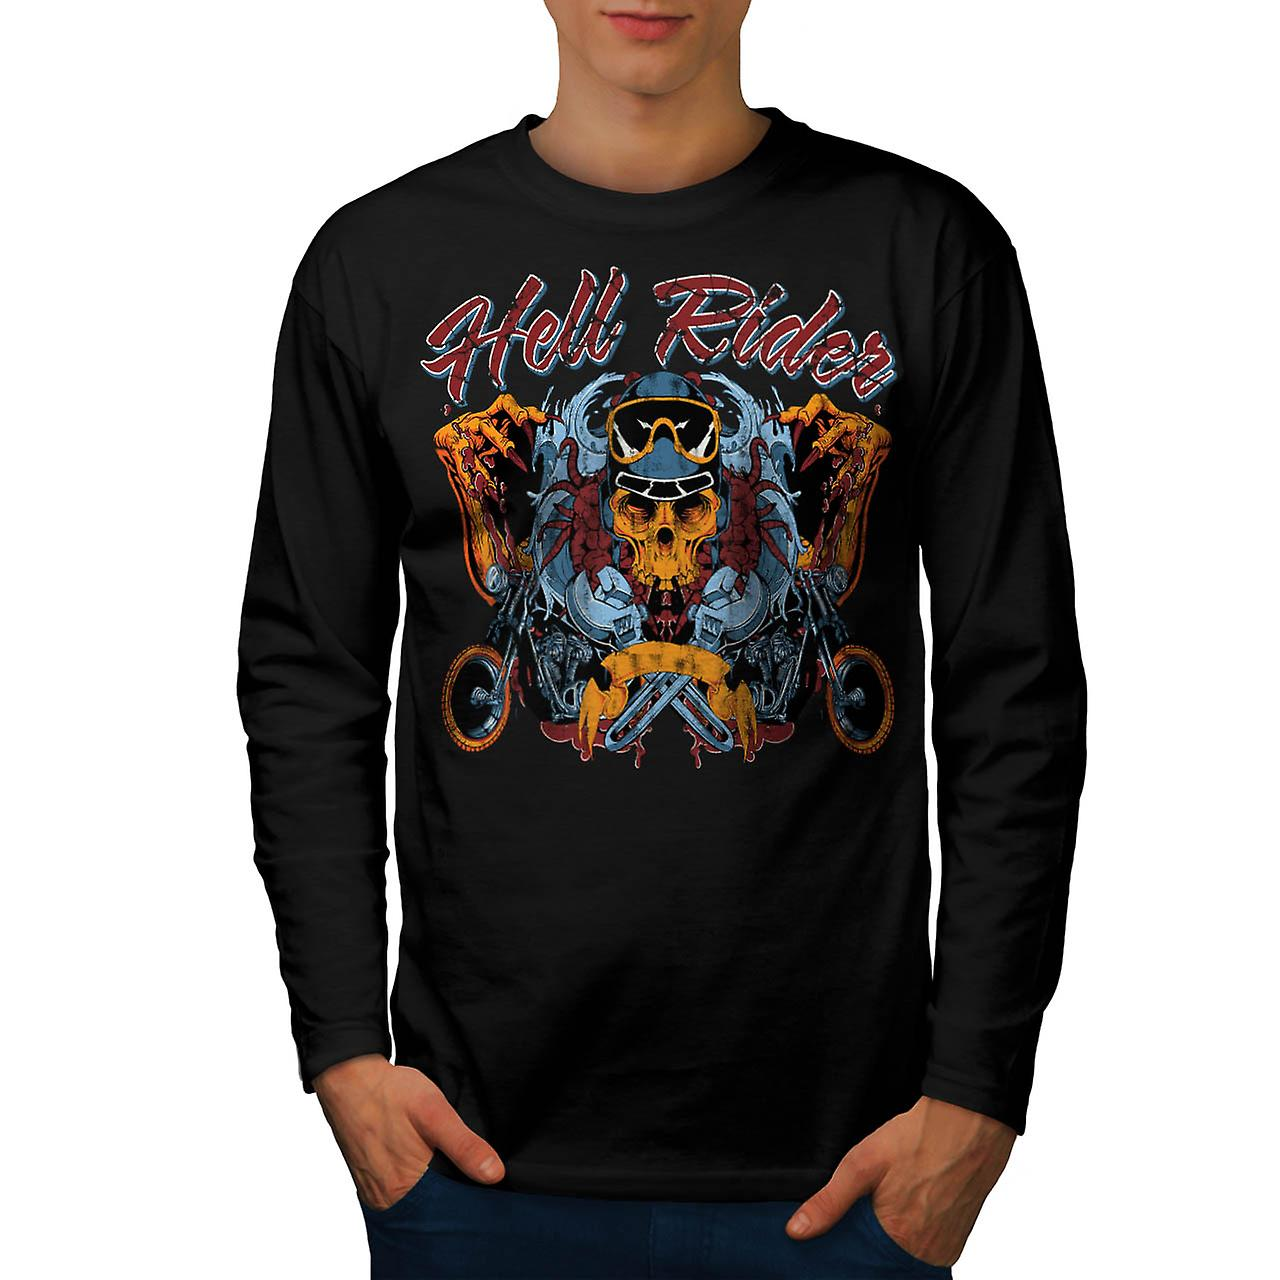 Hell Rider Chopper Biker Life Men Black Long Sleeve T-shirt | Wellcoda